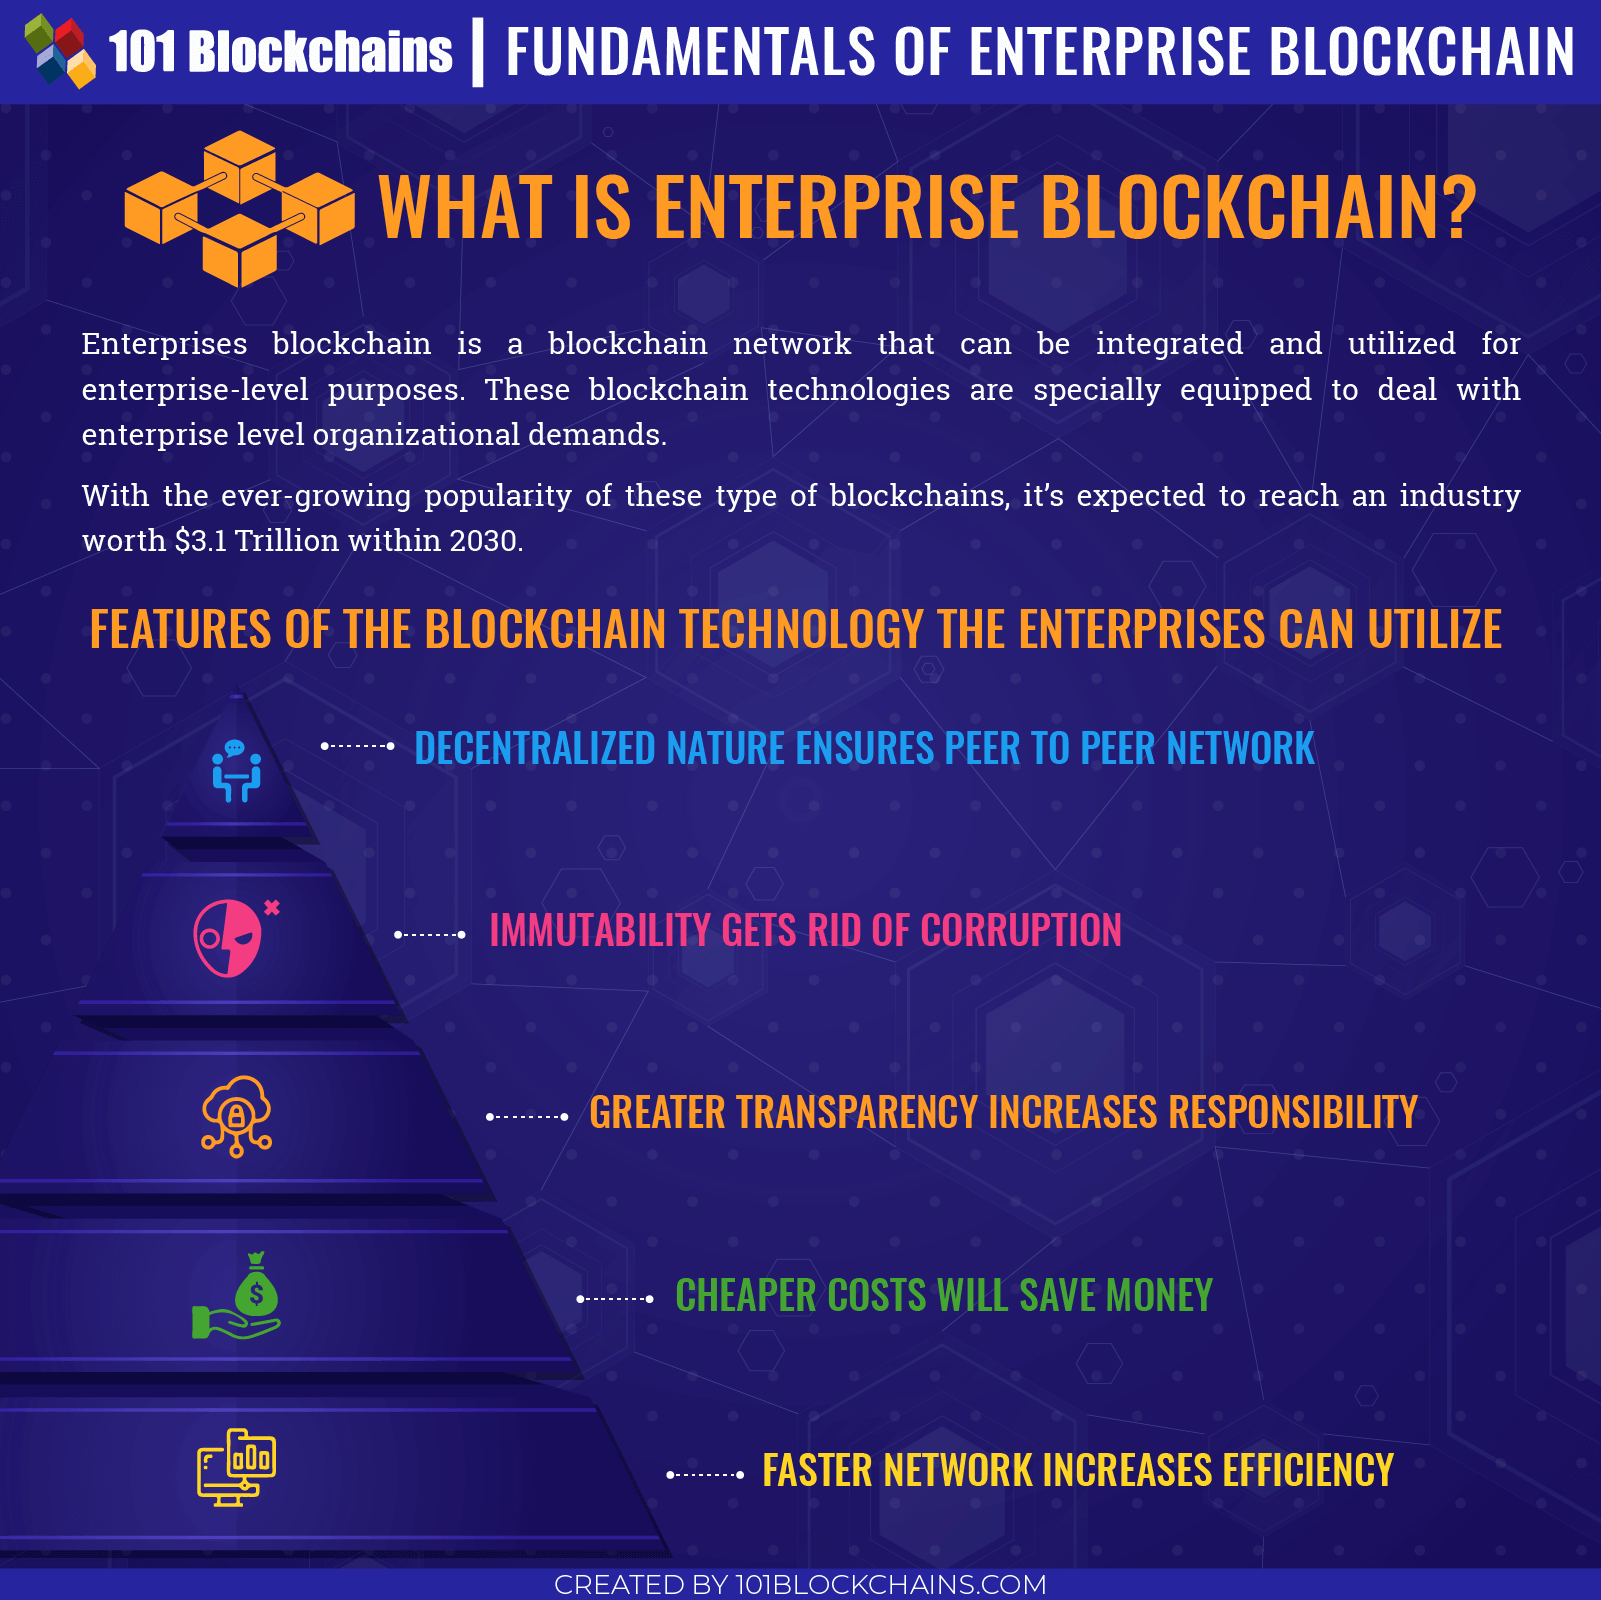 Fundamentals of Enterprise Blockchain